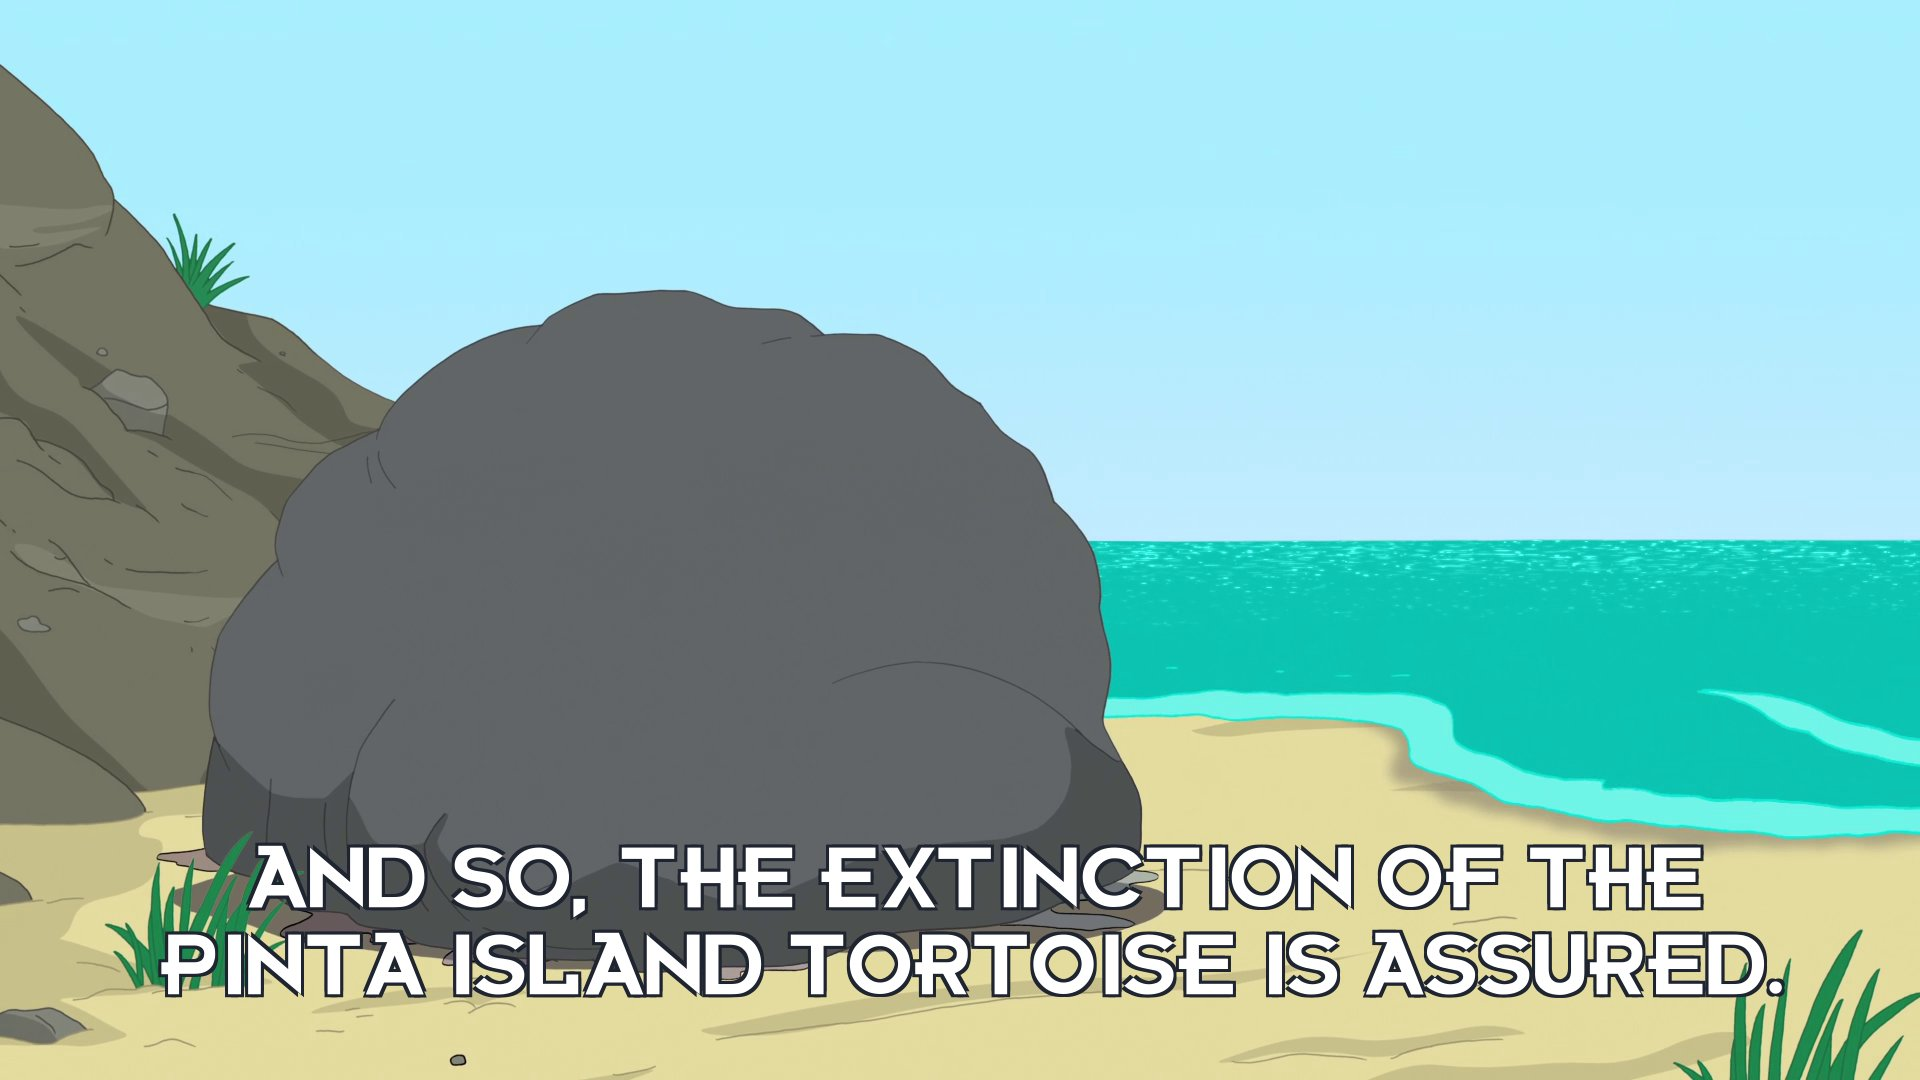 Narrator: And so, the extinction of the Pinta Island tortoise is assured.